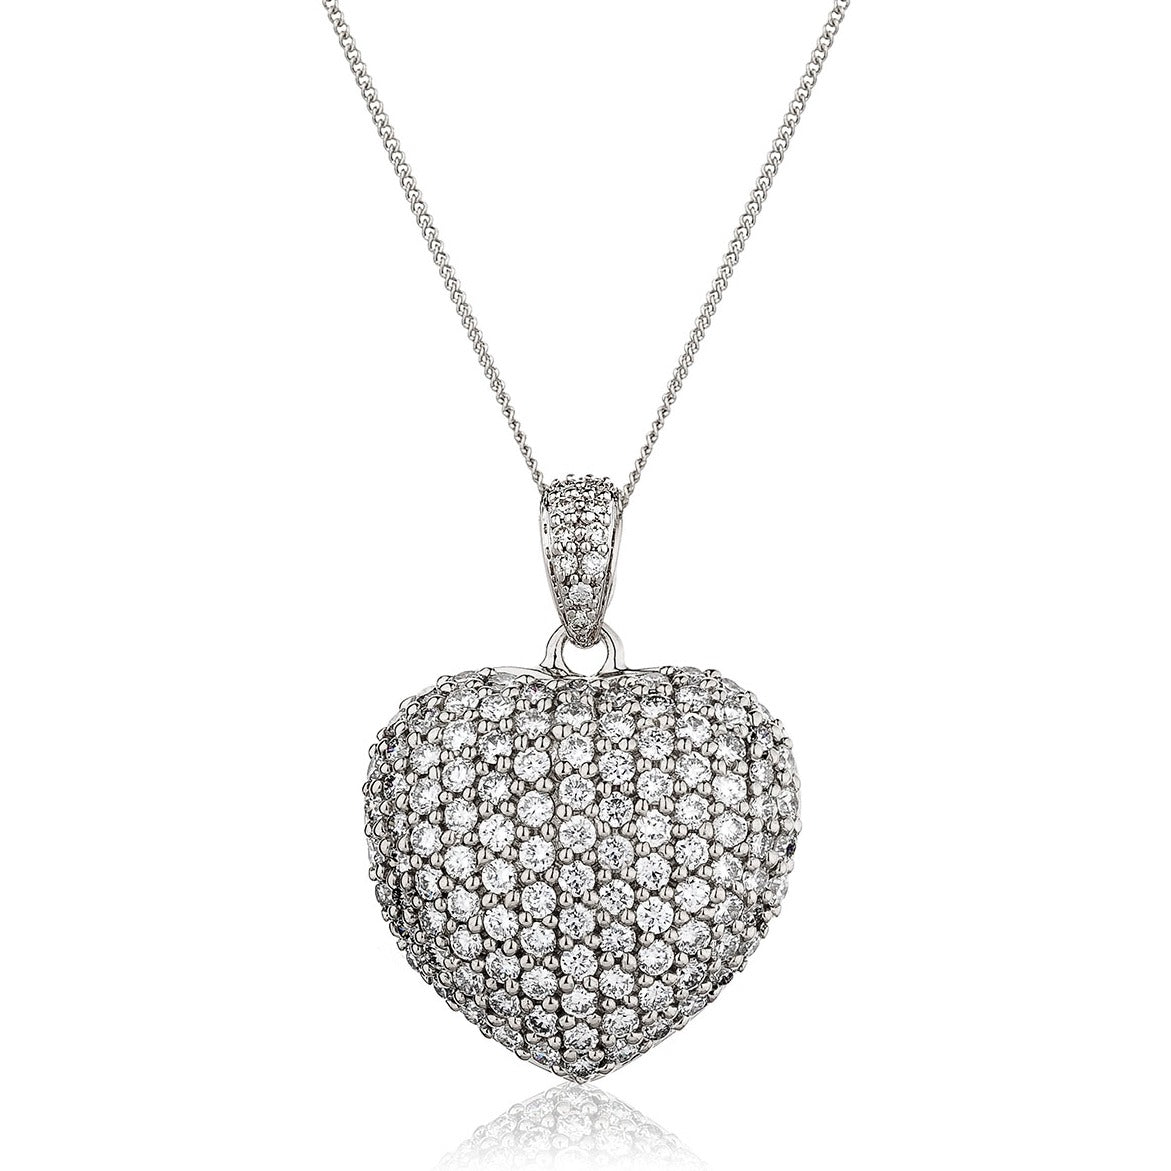 18ct White Gold Pave' Set Diamond Heart Pendant and Chain